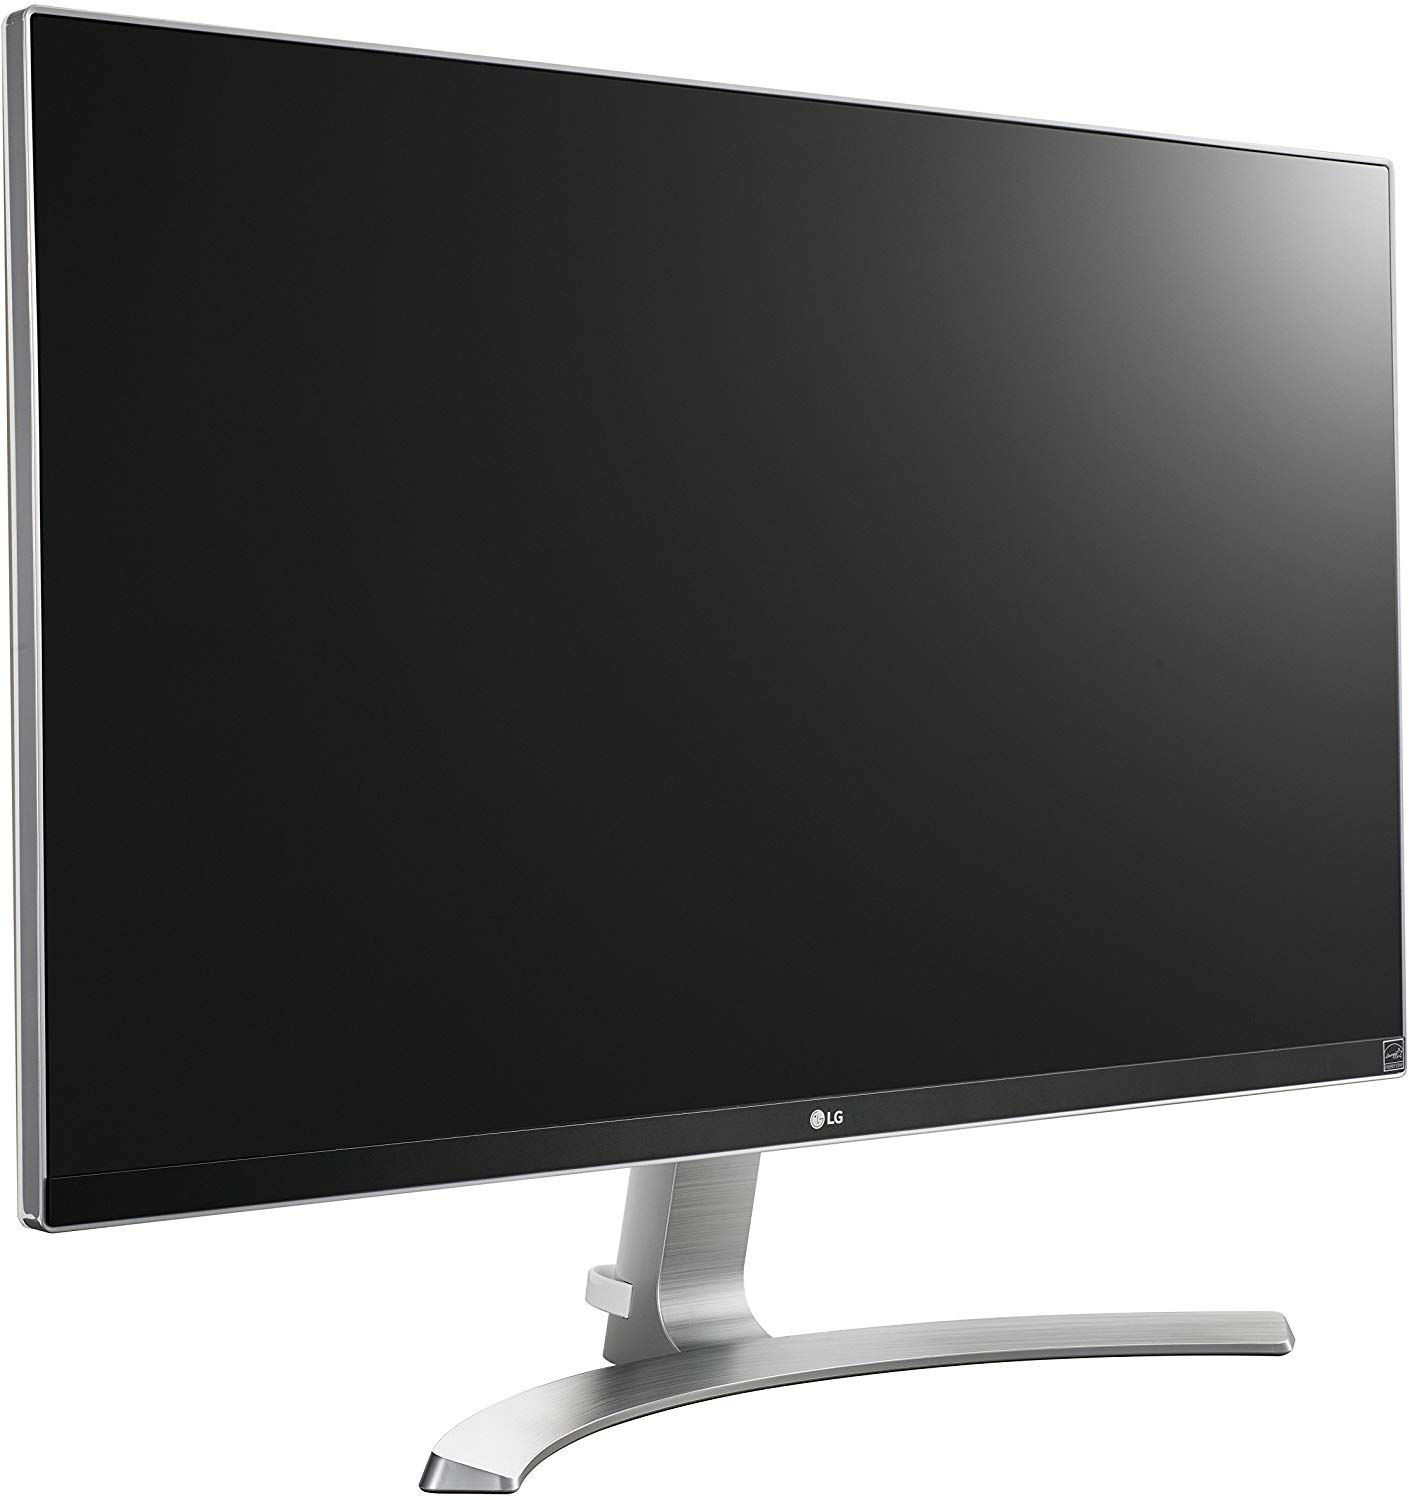 The LG 27UD68-W 4K UltraHD Monitor is $100 Cheaper on Cyber Monday